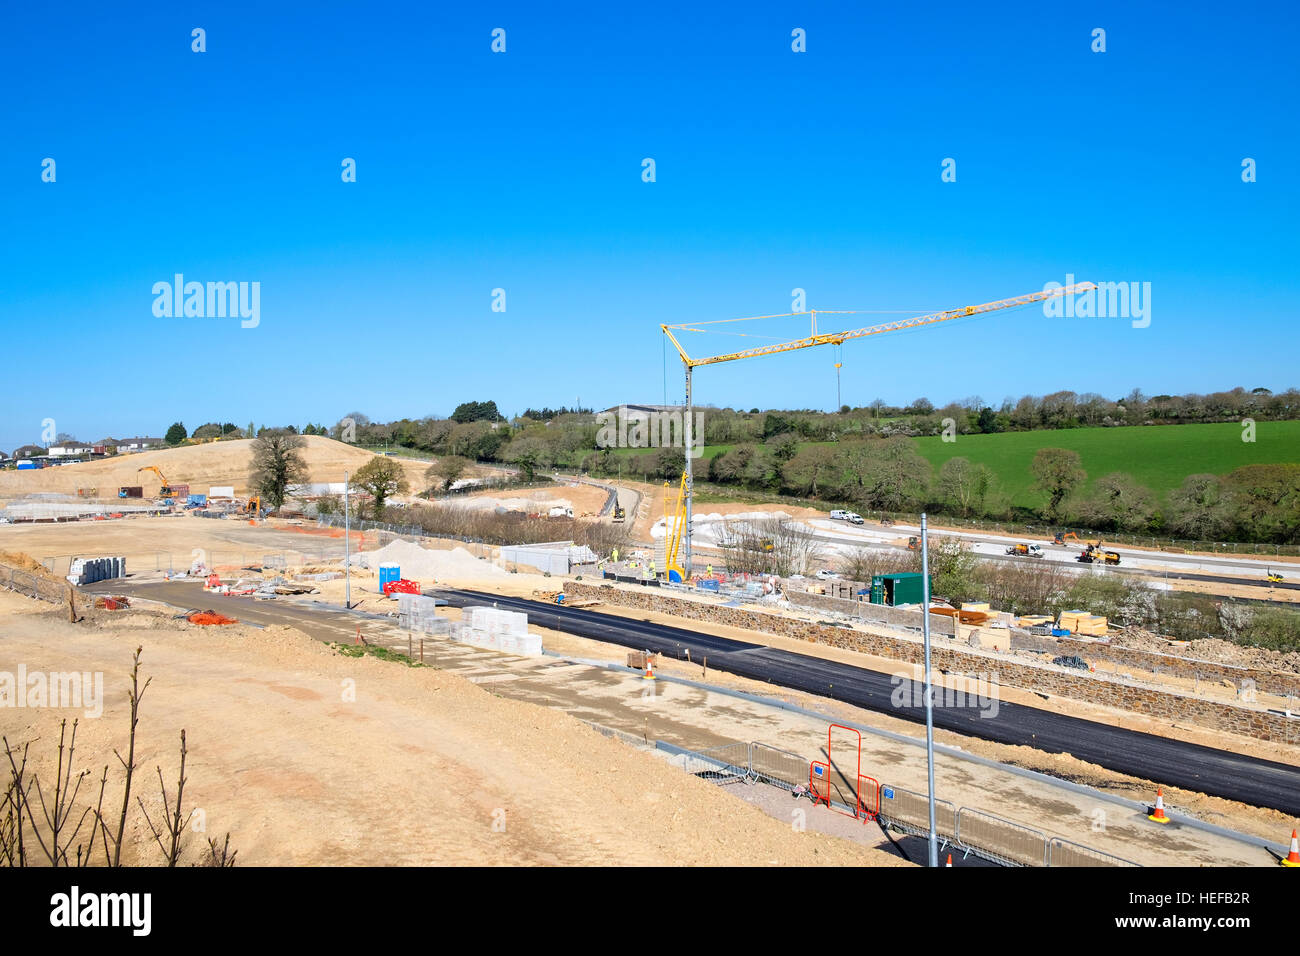 A new development on greenbelt land near Truro in Cornwall, UK - Stock Image